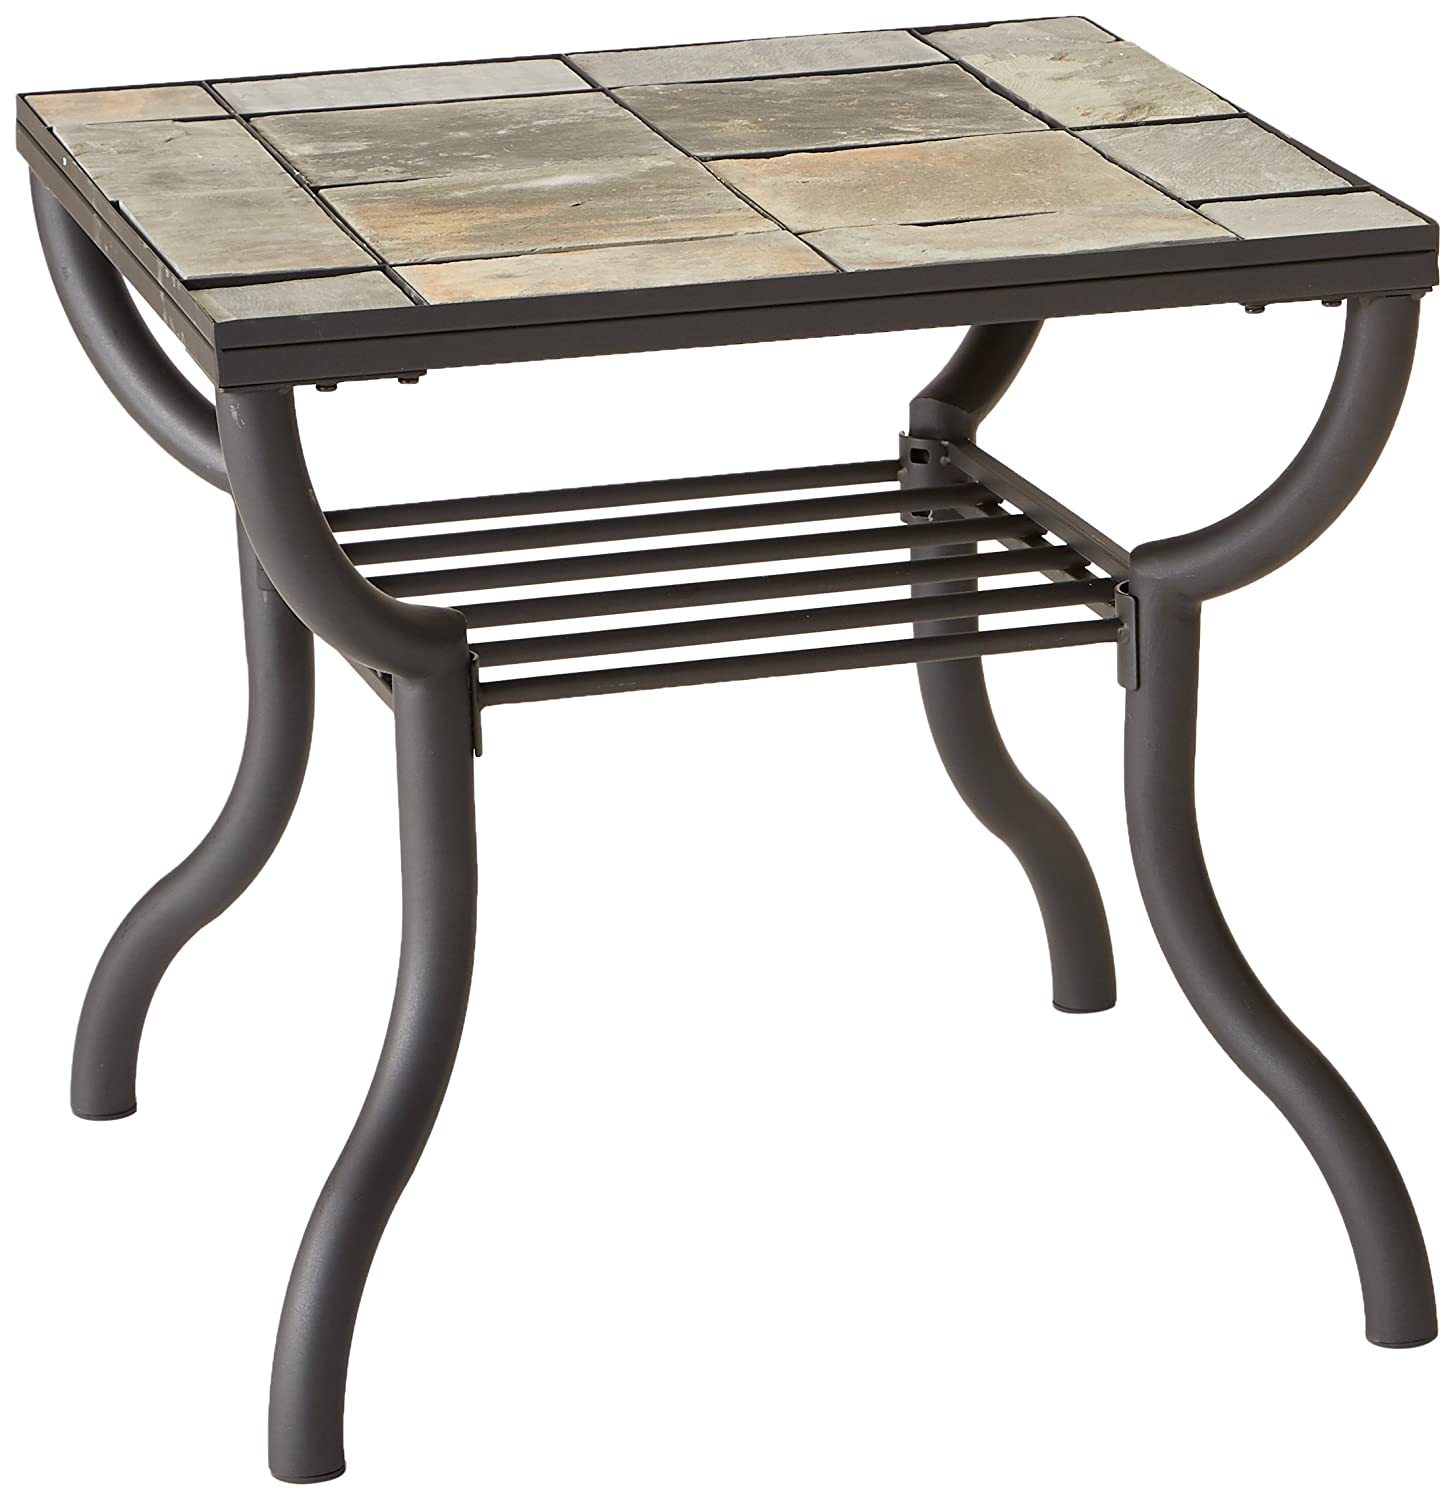 Ashley Furniture Signature Design - Antigo Chair Side End Table - Contemporary - Slate Top with Metal Bottom - Black T233-7 M305443